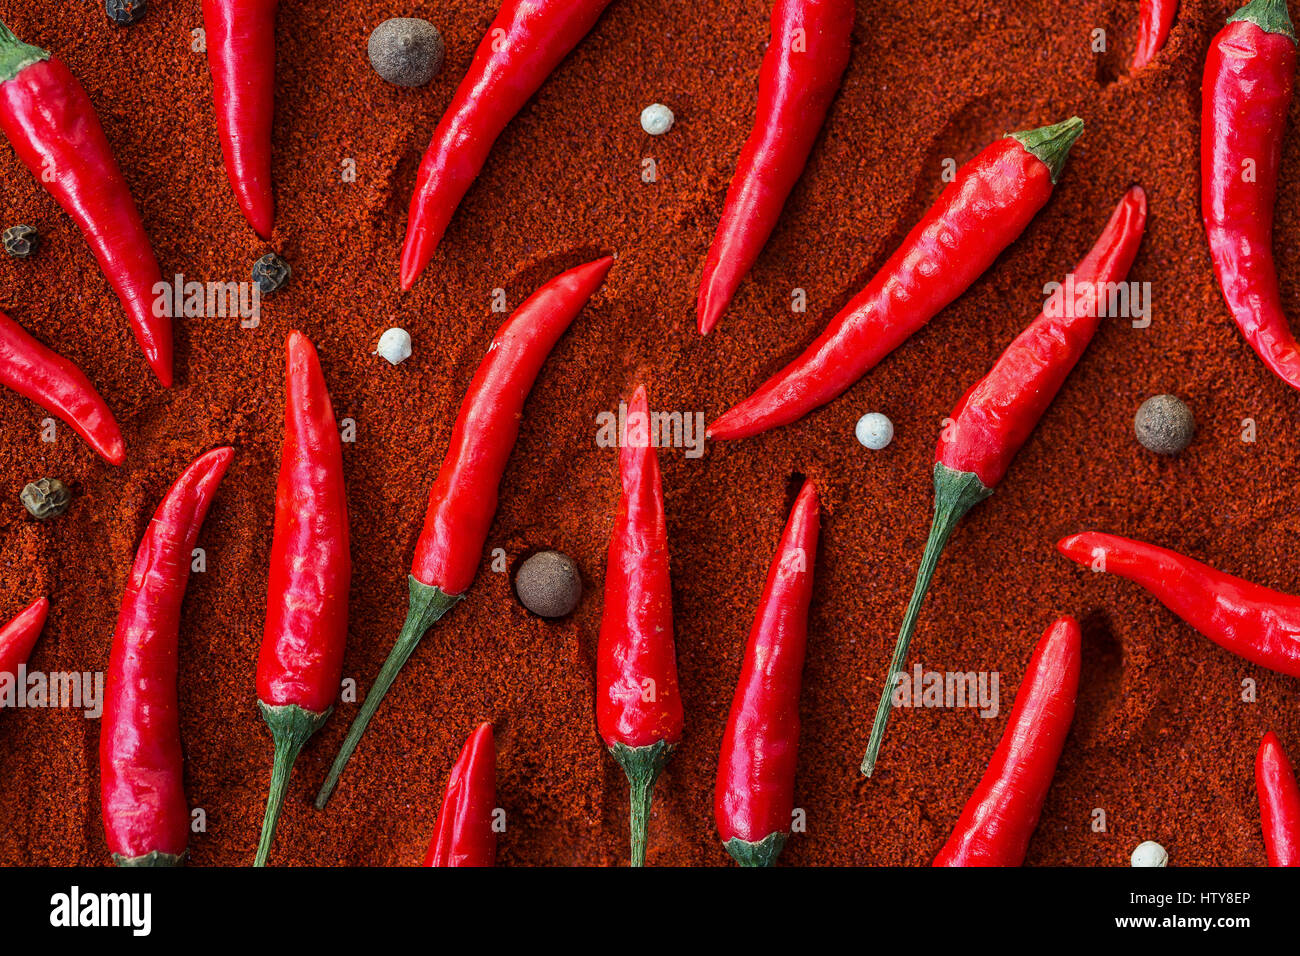 A lot of the red hot chilli peppers and black peppers corns lying on a red paprika. a concept of spicy food and - Stock Image